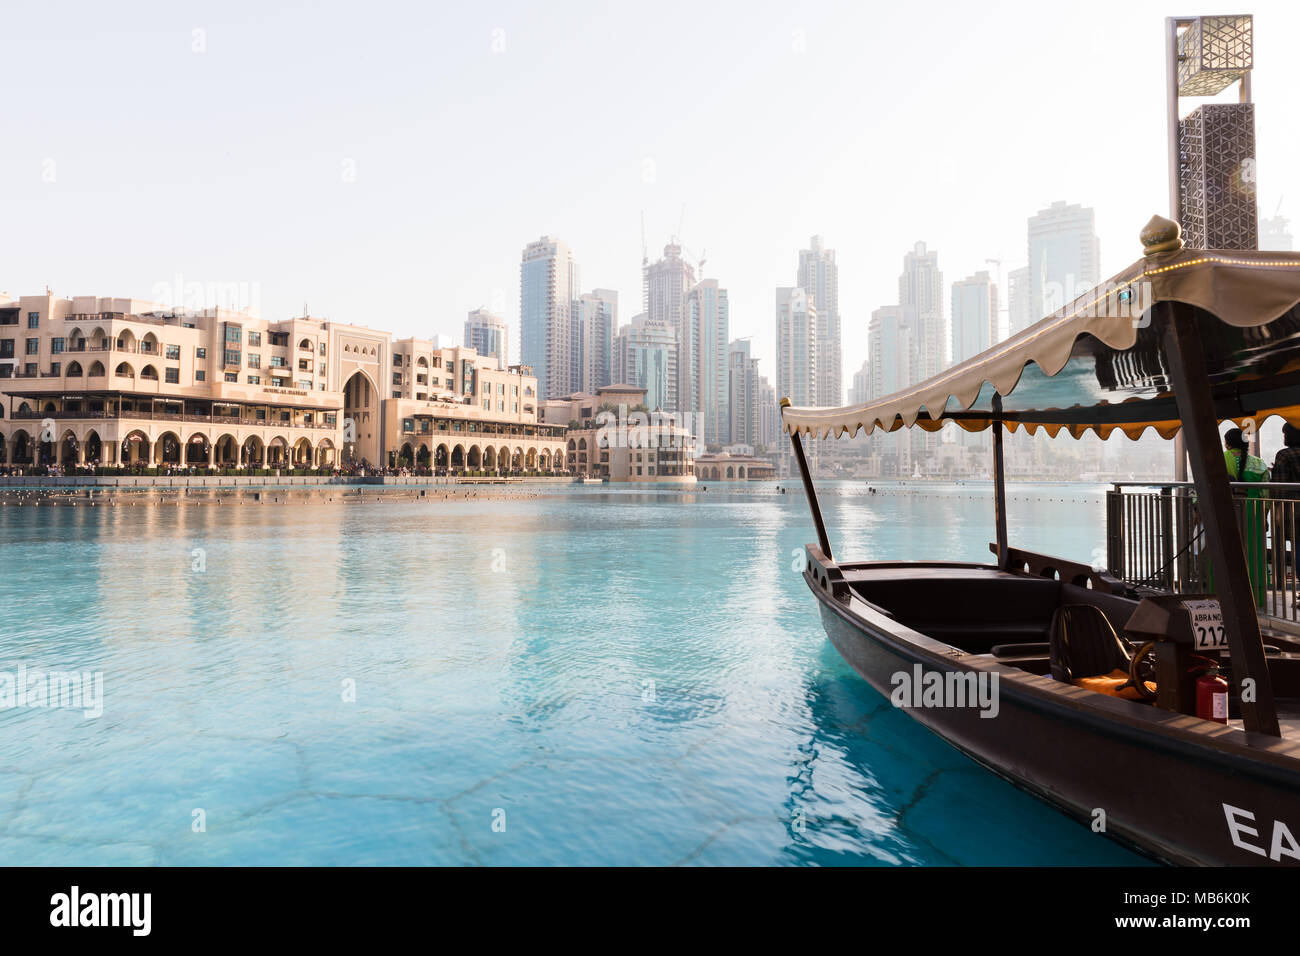 Dubai, United Arab Emirates, March 27th 2018: Calm day near the dancing fountain of Dubai - Stock Image